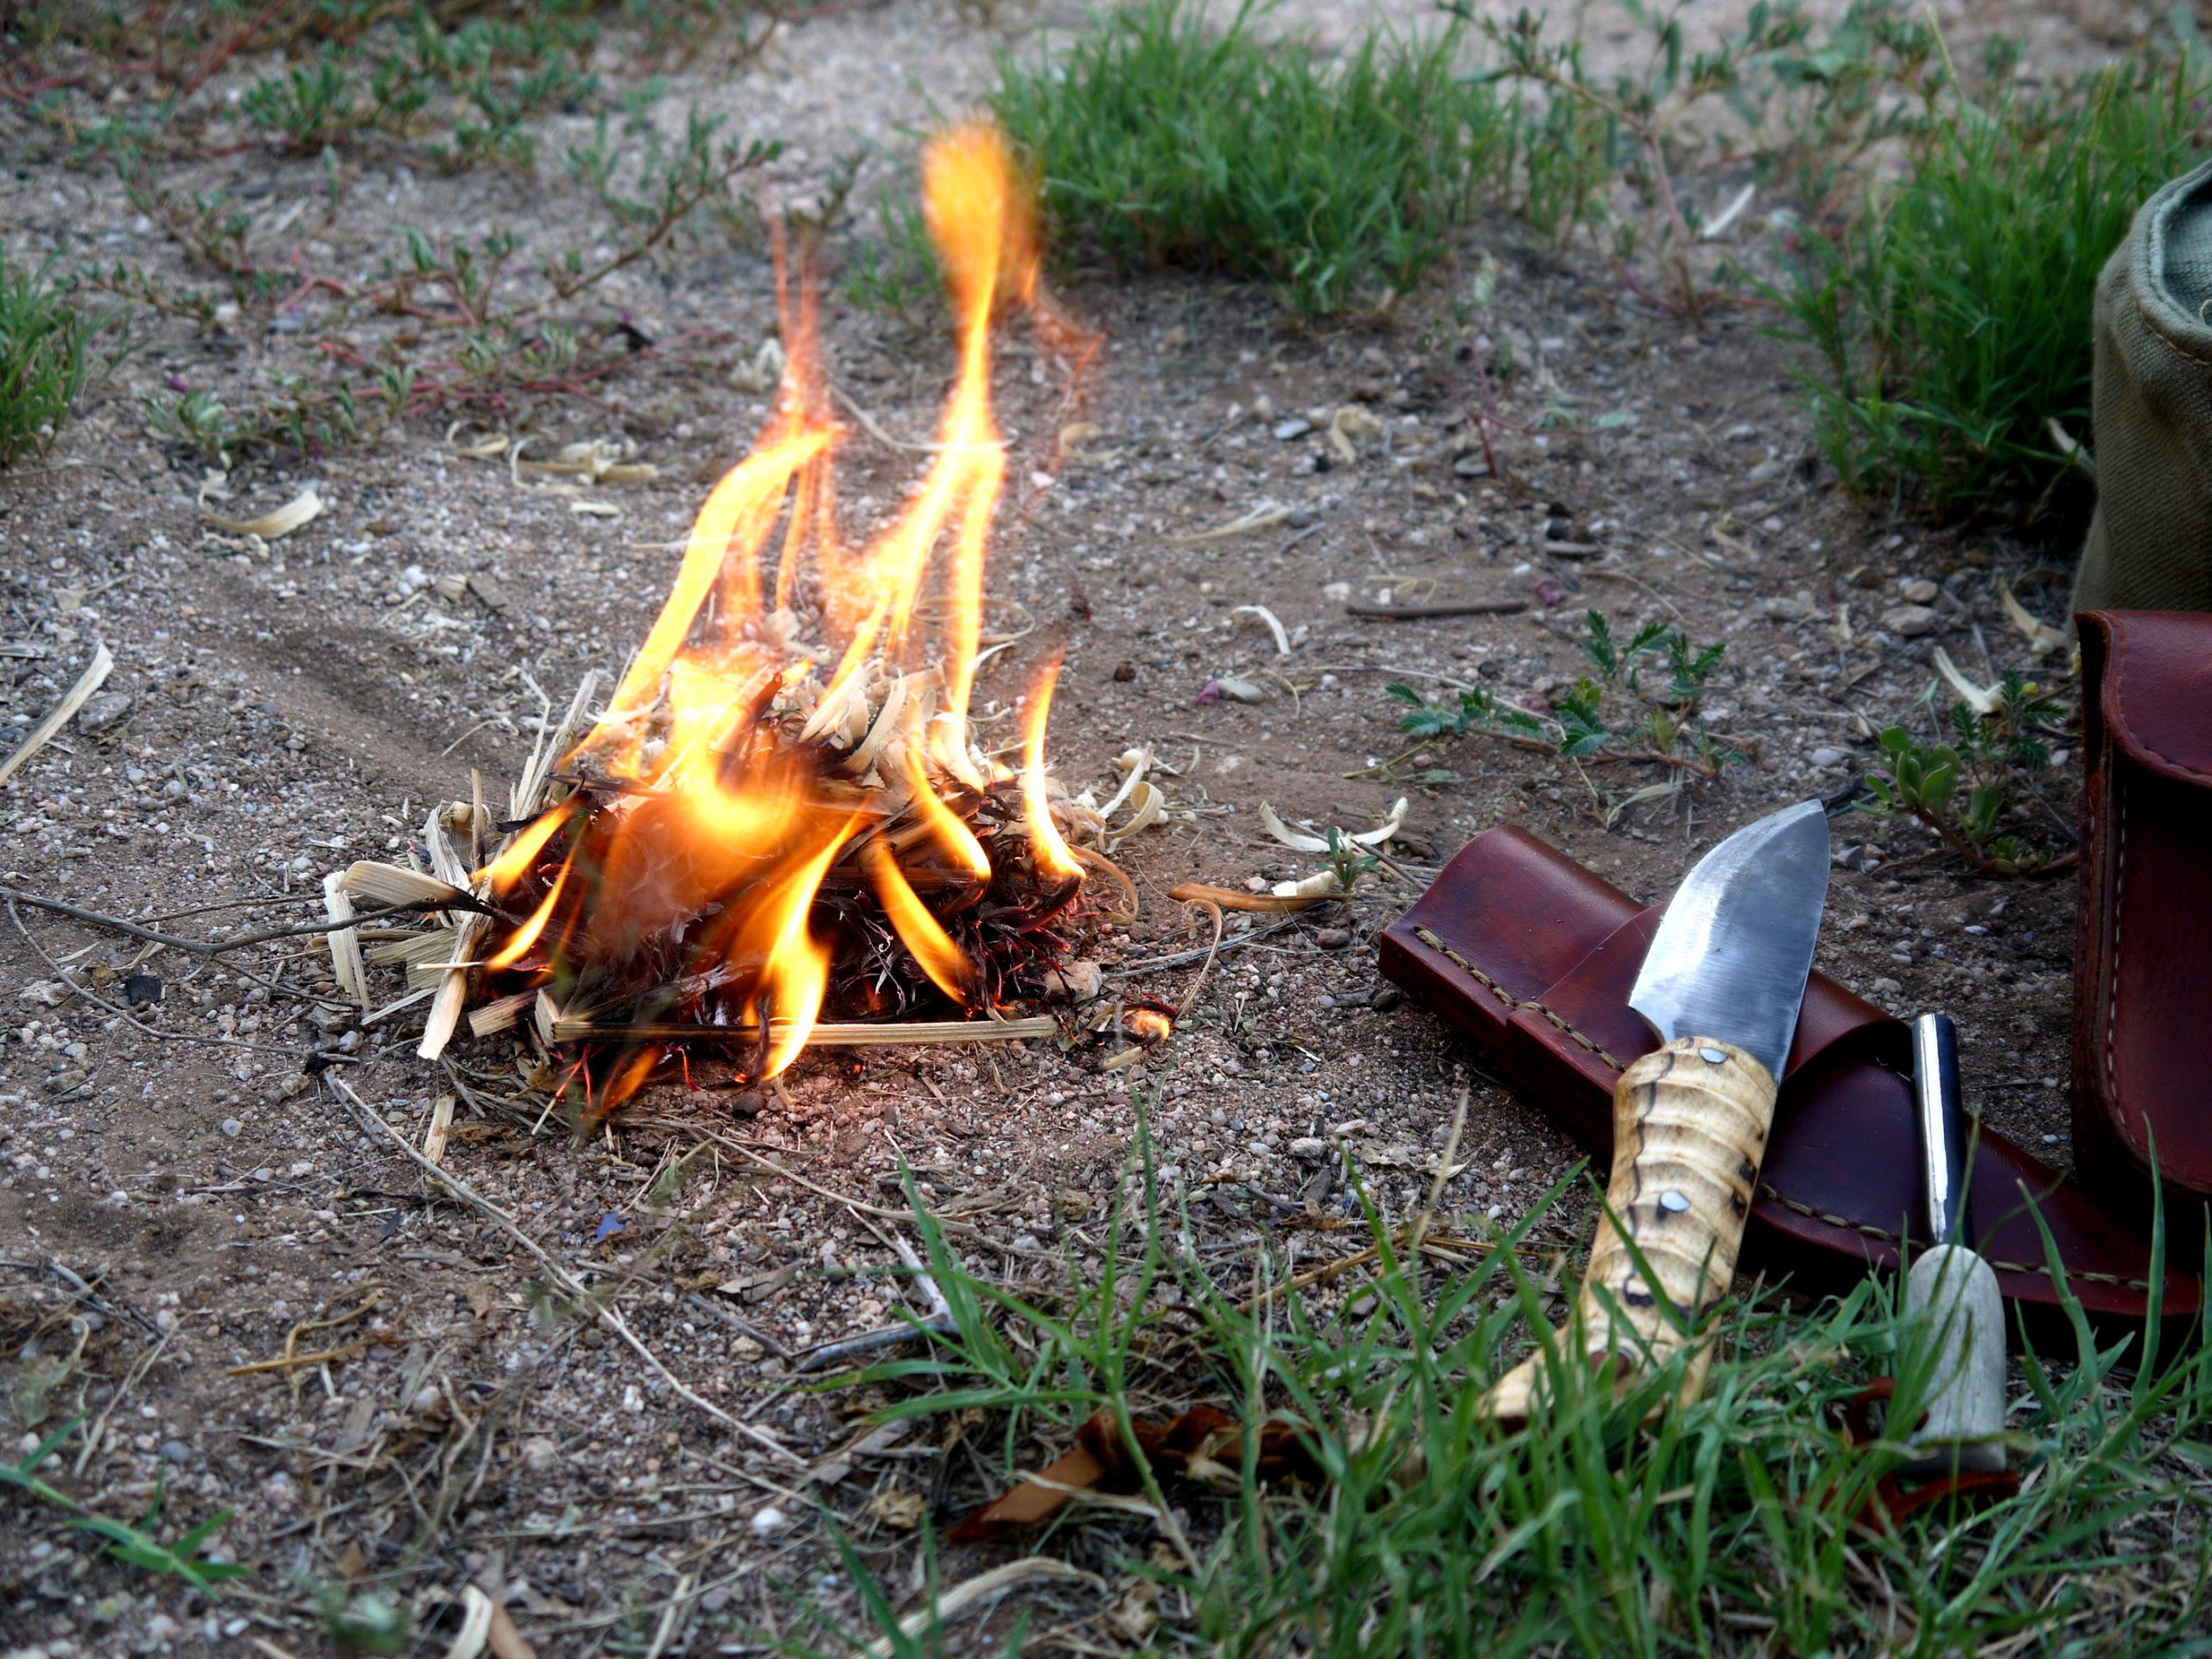 Basic Survival Skills and few Items for Bartering after SHTF